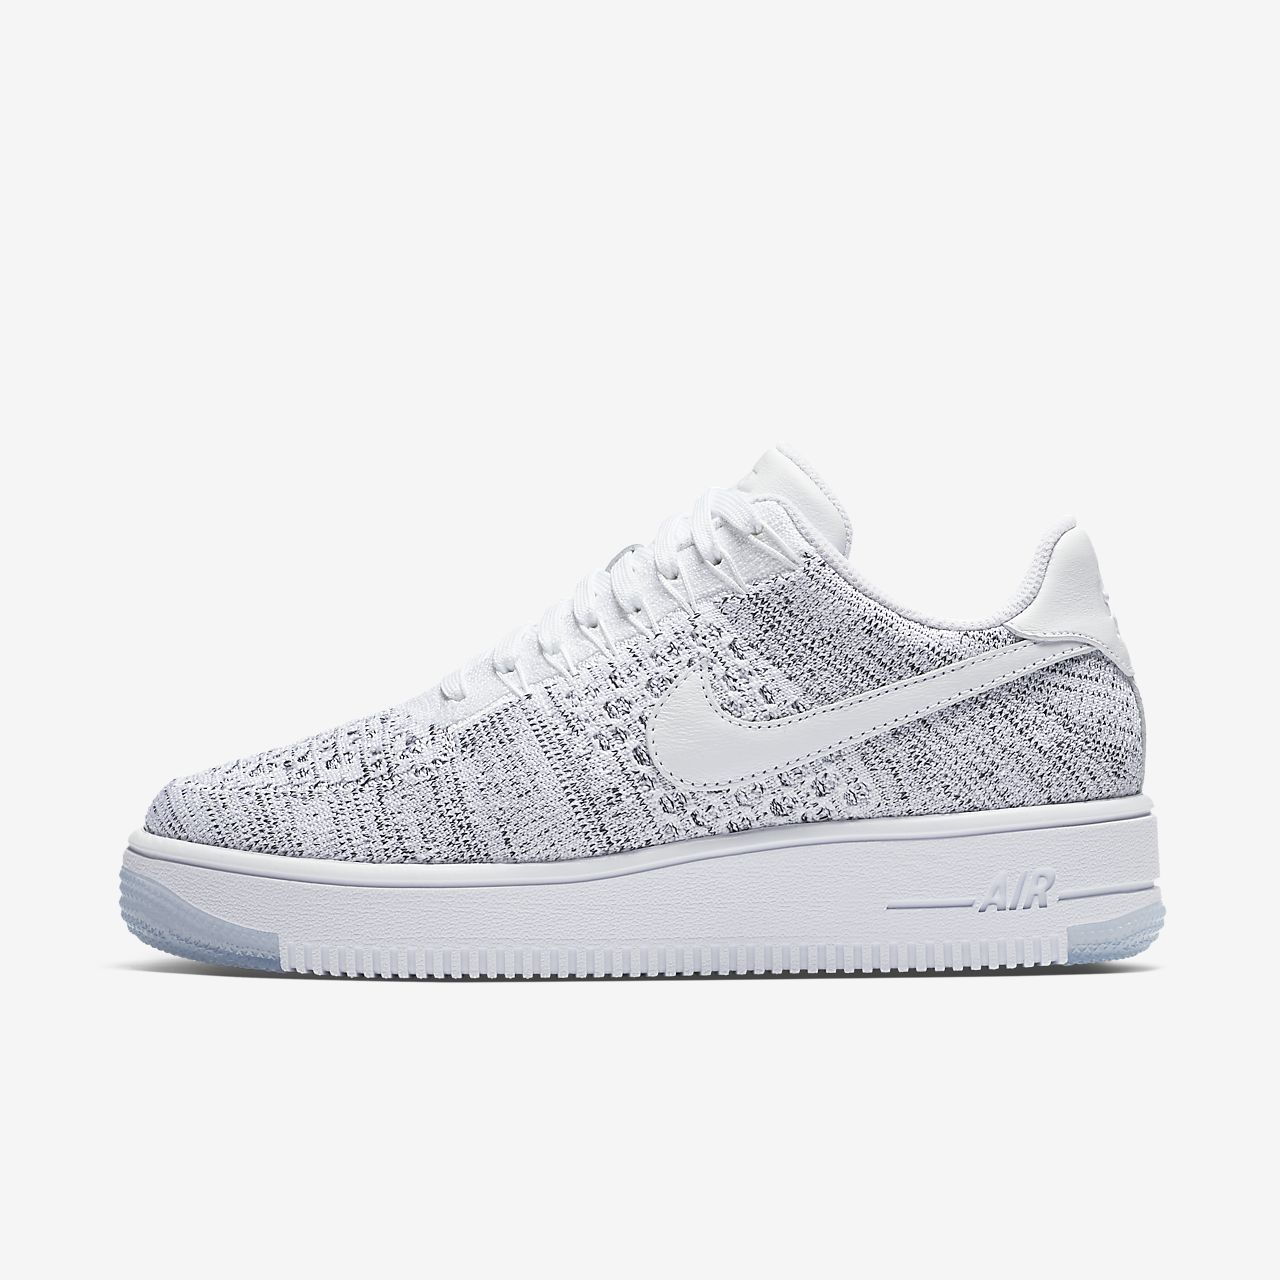 air force 1 flyknit black sole nz